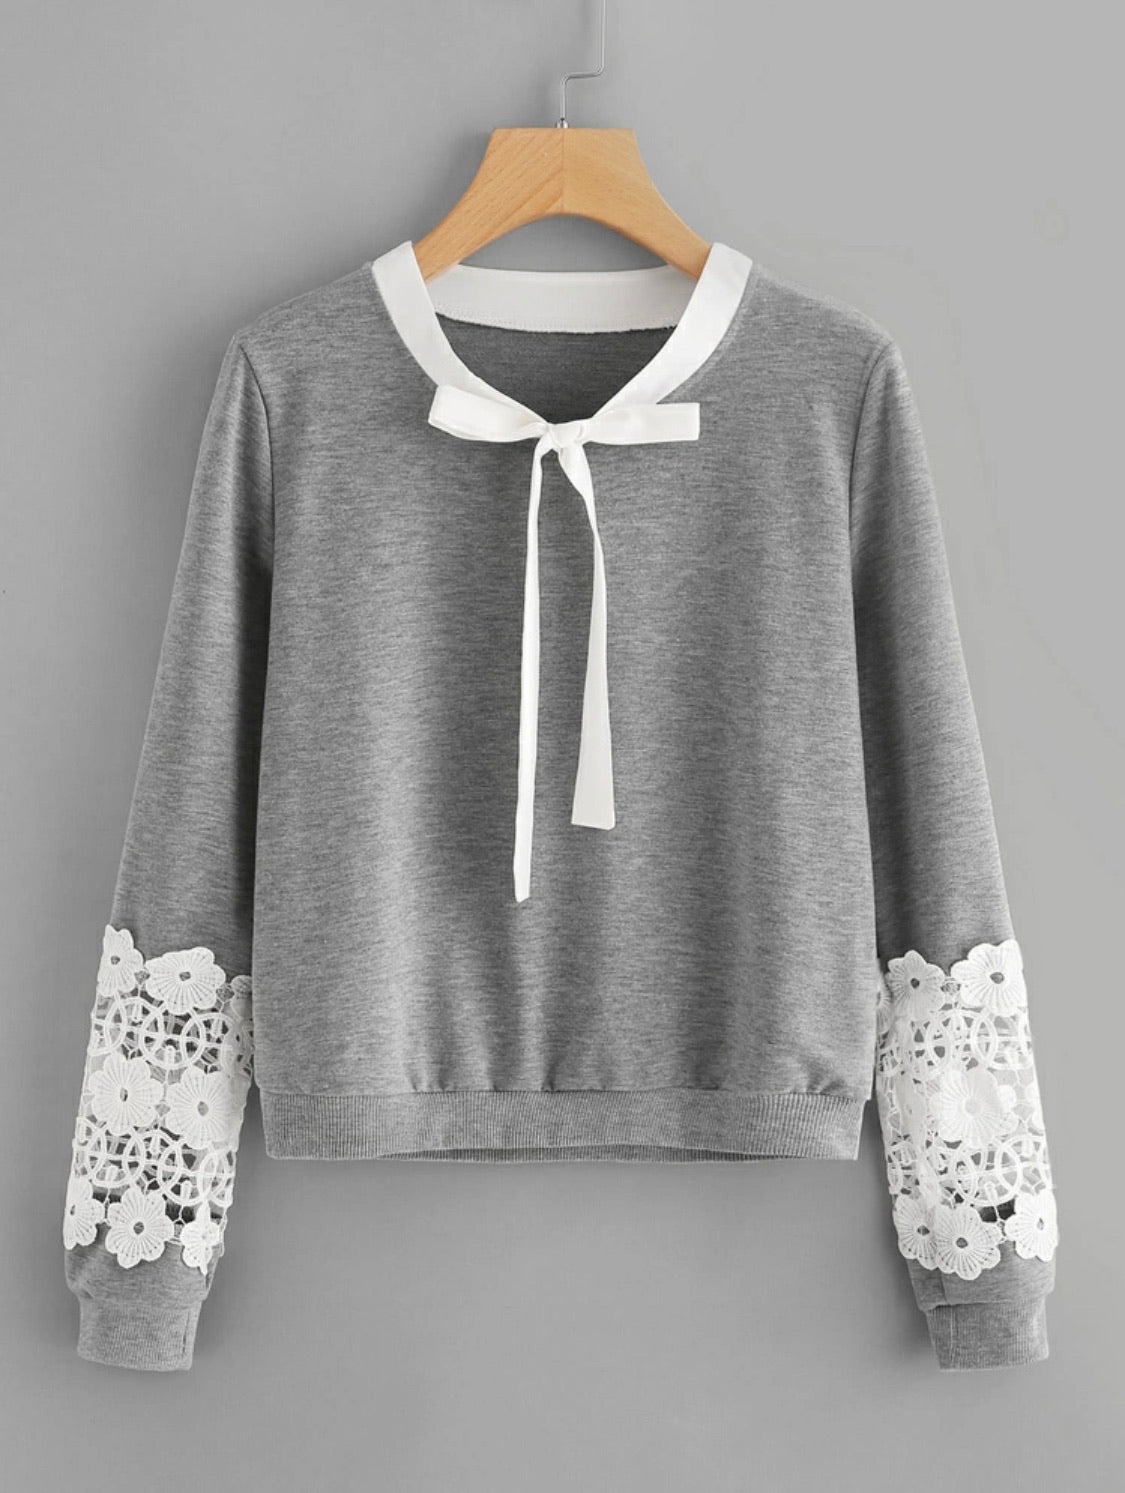 Contrast crochet bow tie sweatshirt - Shop Station EG